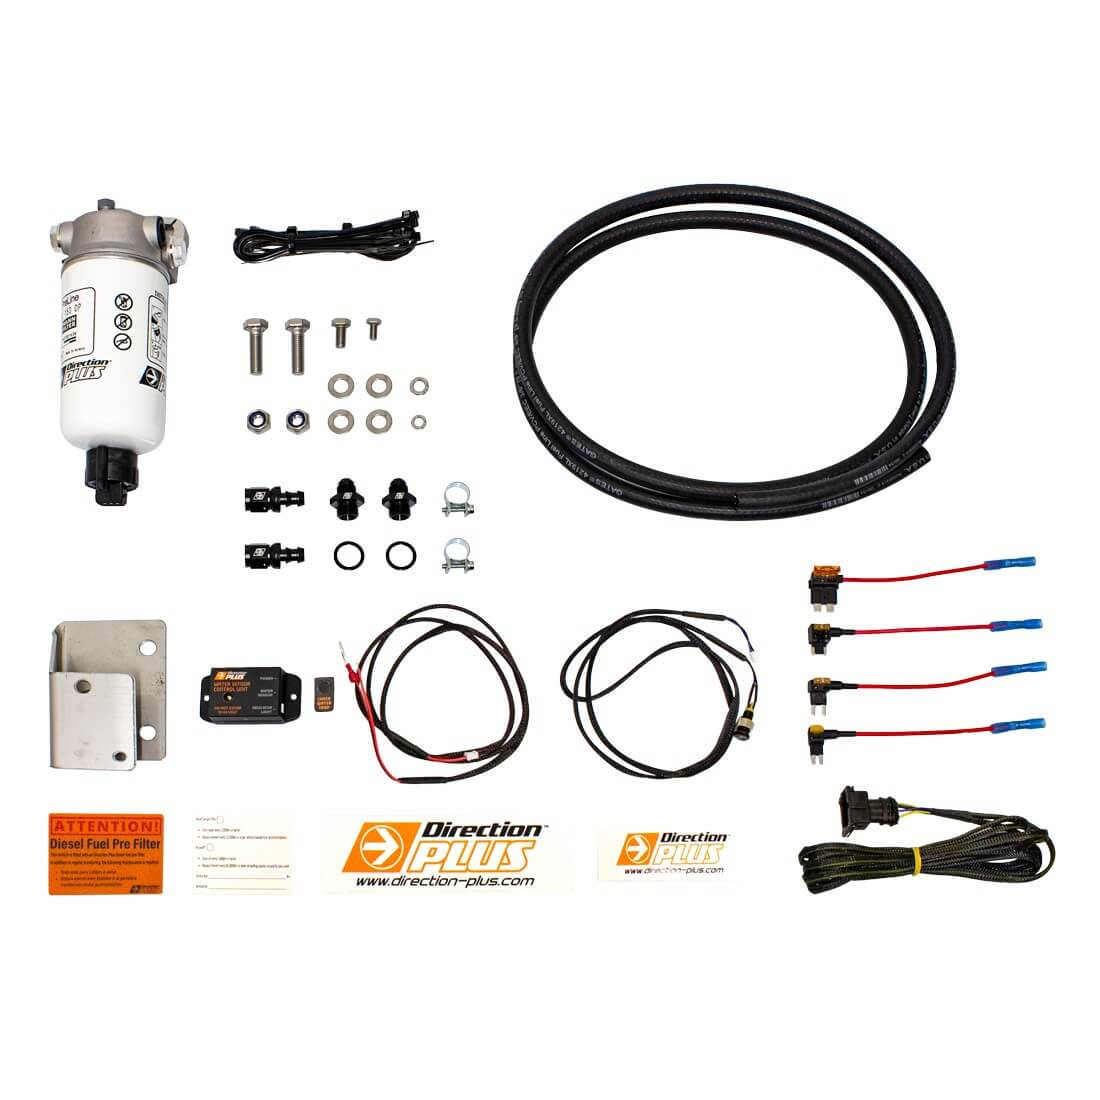 PRELINE-PLUS PRE-FILTER KIT PL626DPK SUITABLE FOR  NISSAN PATROL GU 06-18